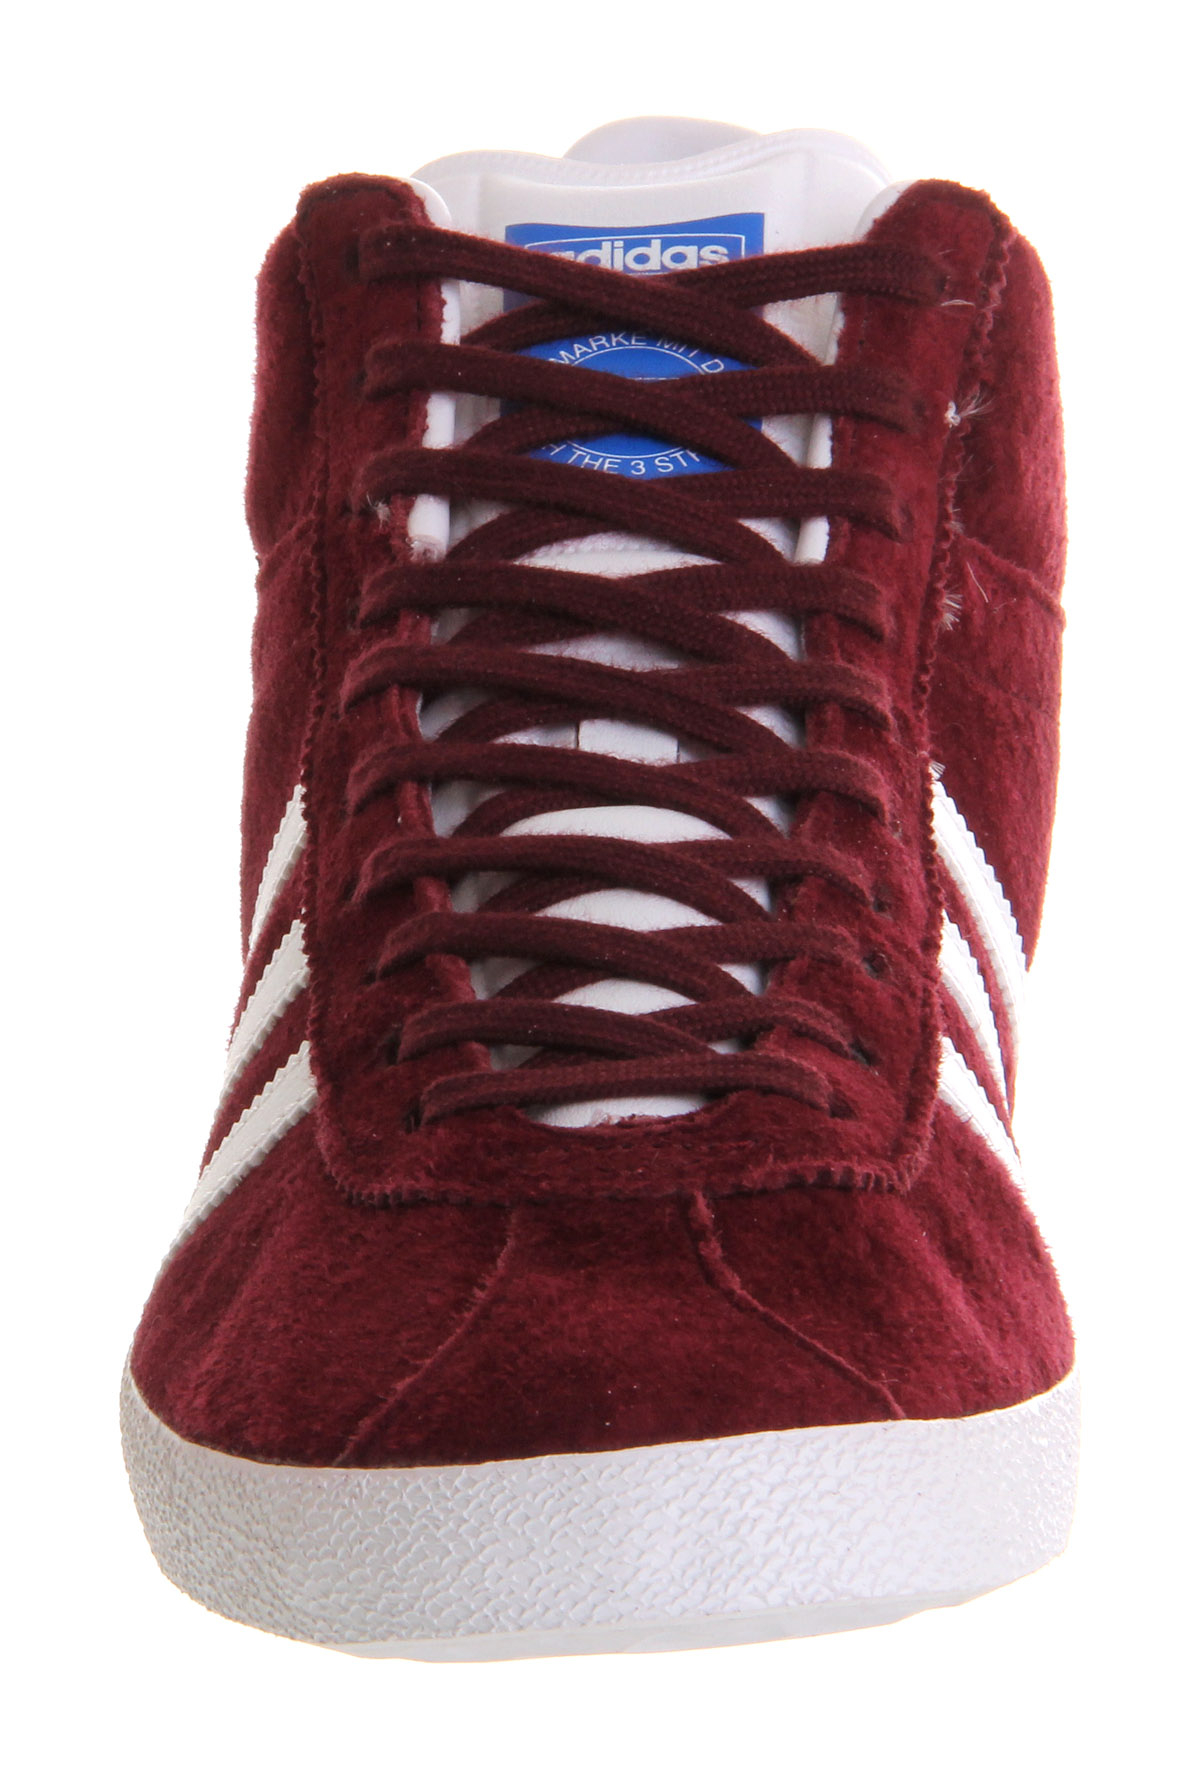 adidas originals gazelle indoor burgundy, Adidas Adizero